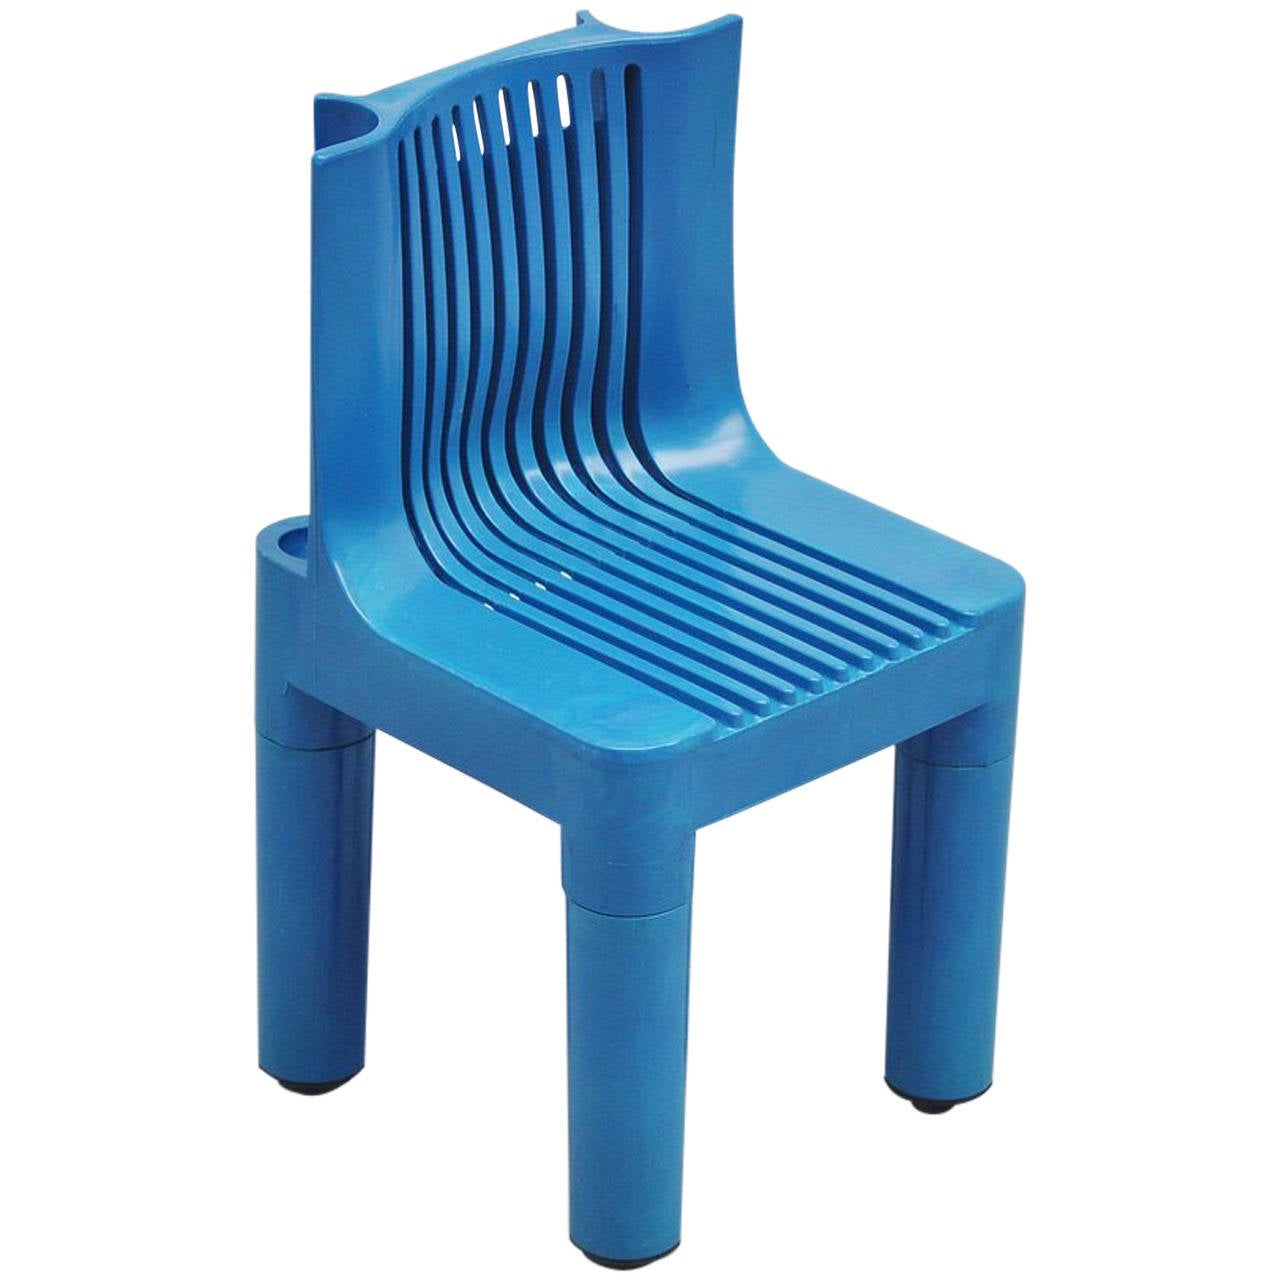 Marco zanuso blue child 39 s chair for kartell 1964 at 1stdibs for Small chair for kid